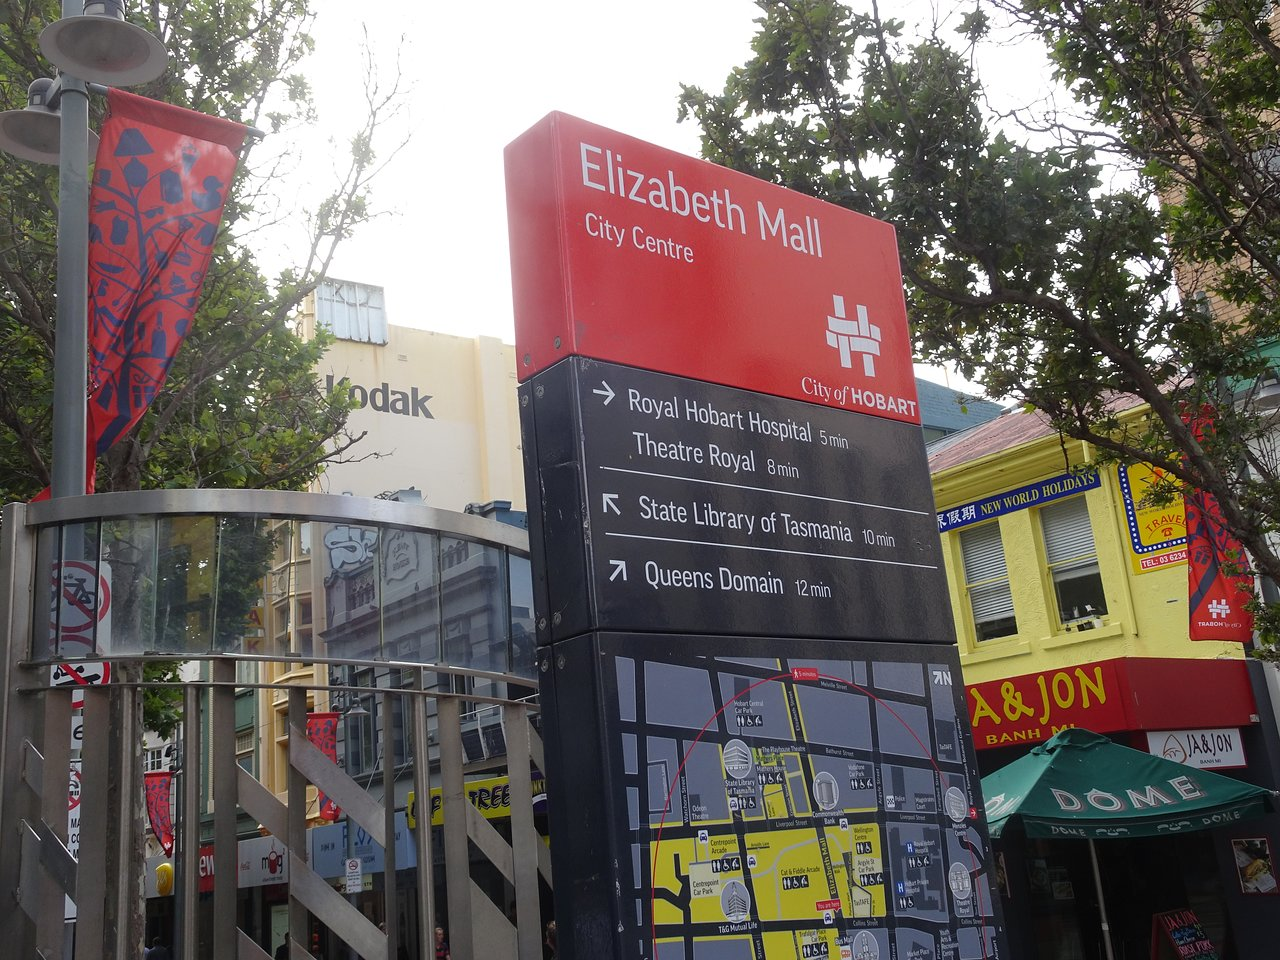 elizabeth street mall (hobart) - 2019 all you need to know